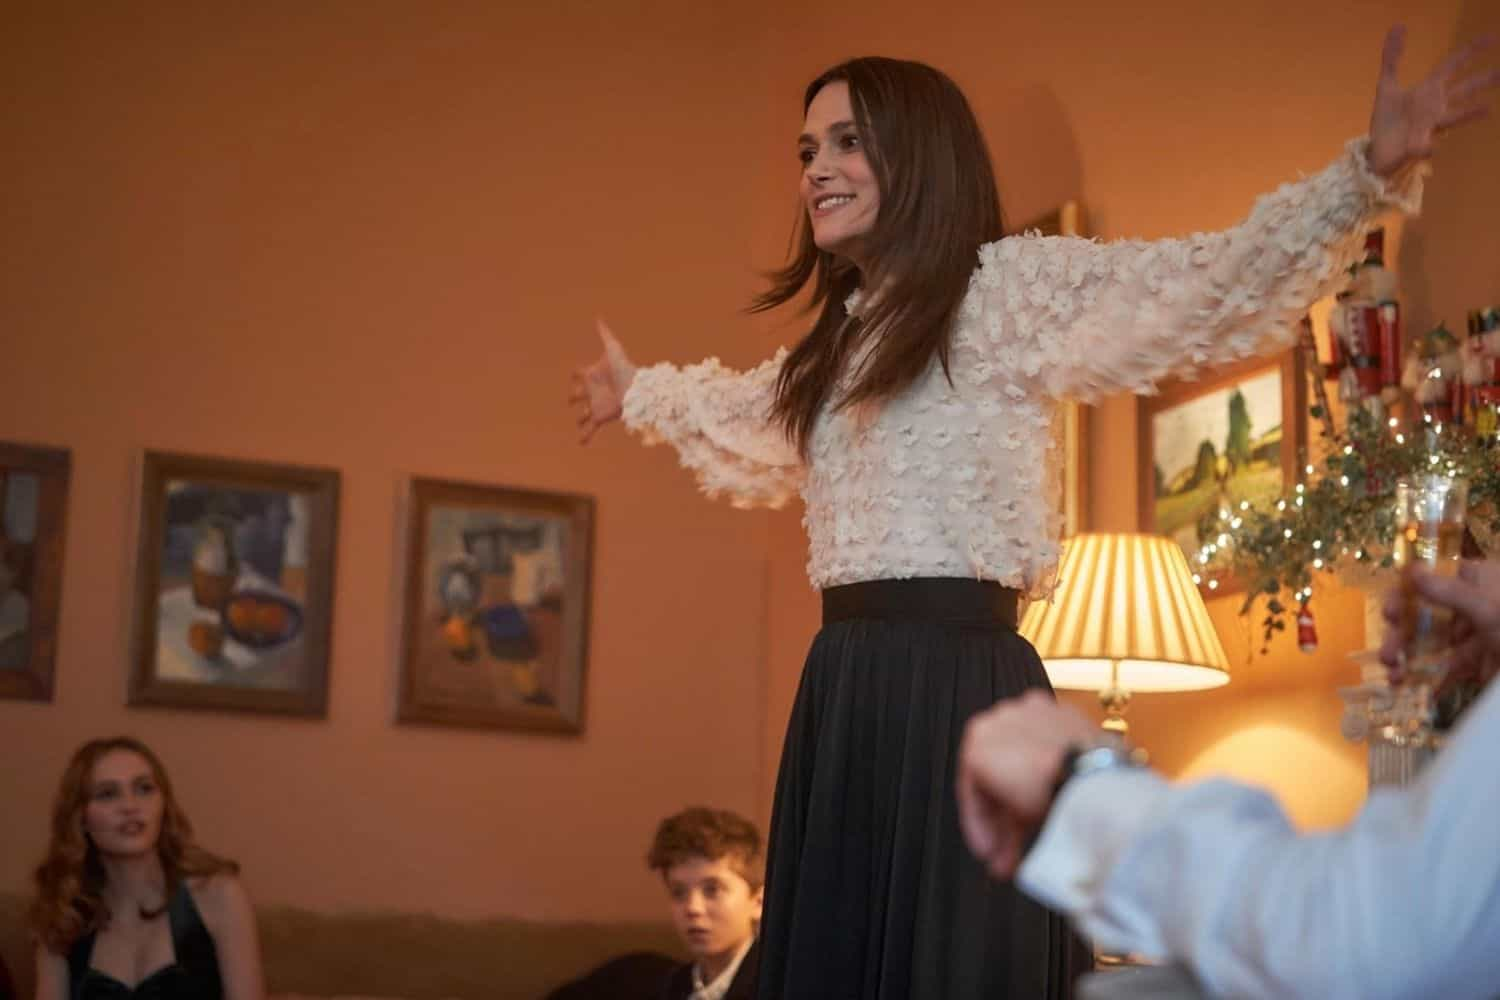 """Keira Knightley to appear in a not-so-merry Christmas movie: """"Silent Night"""""""